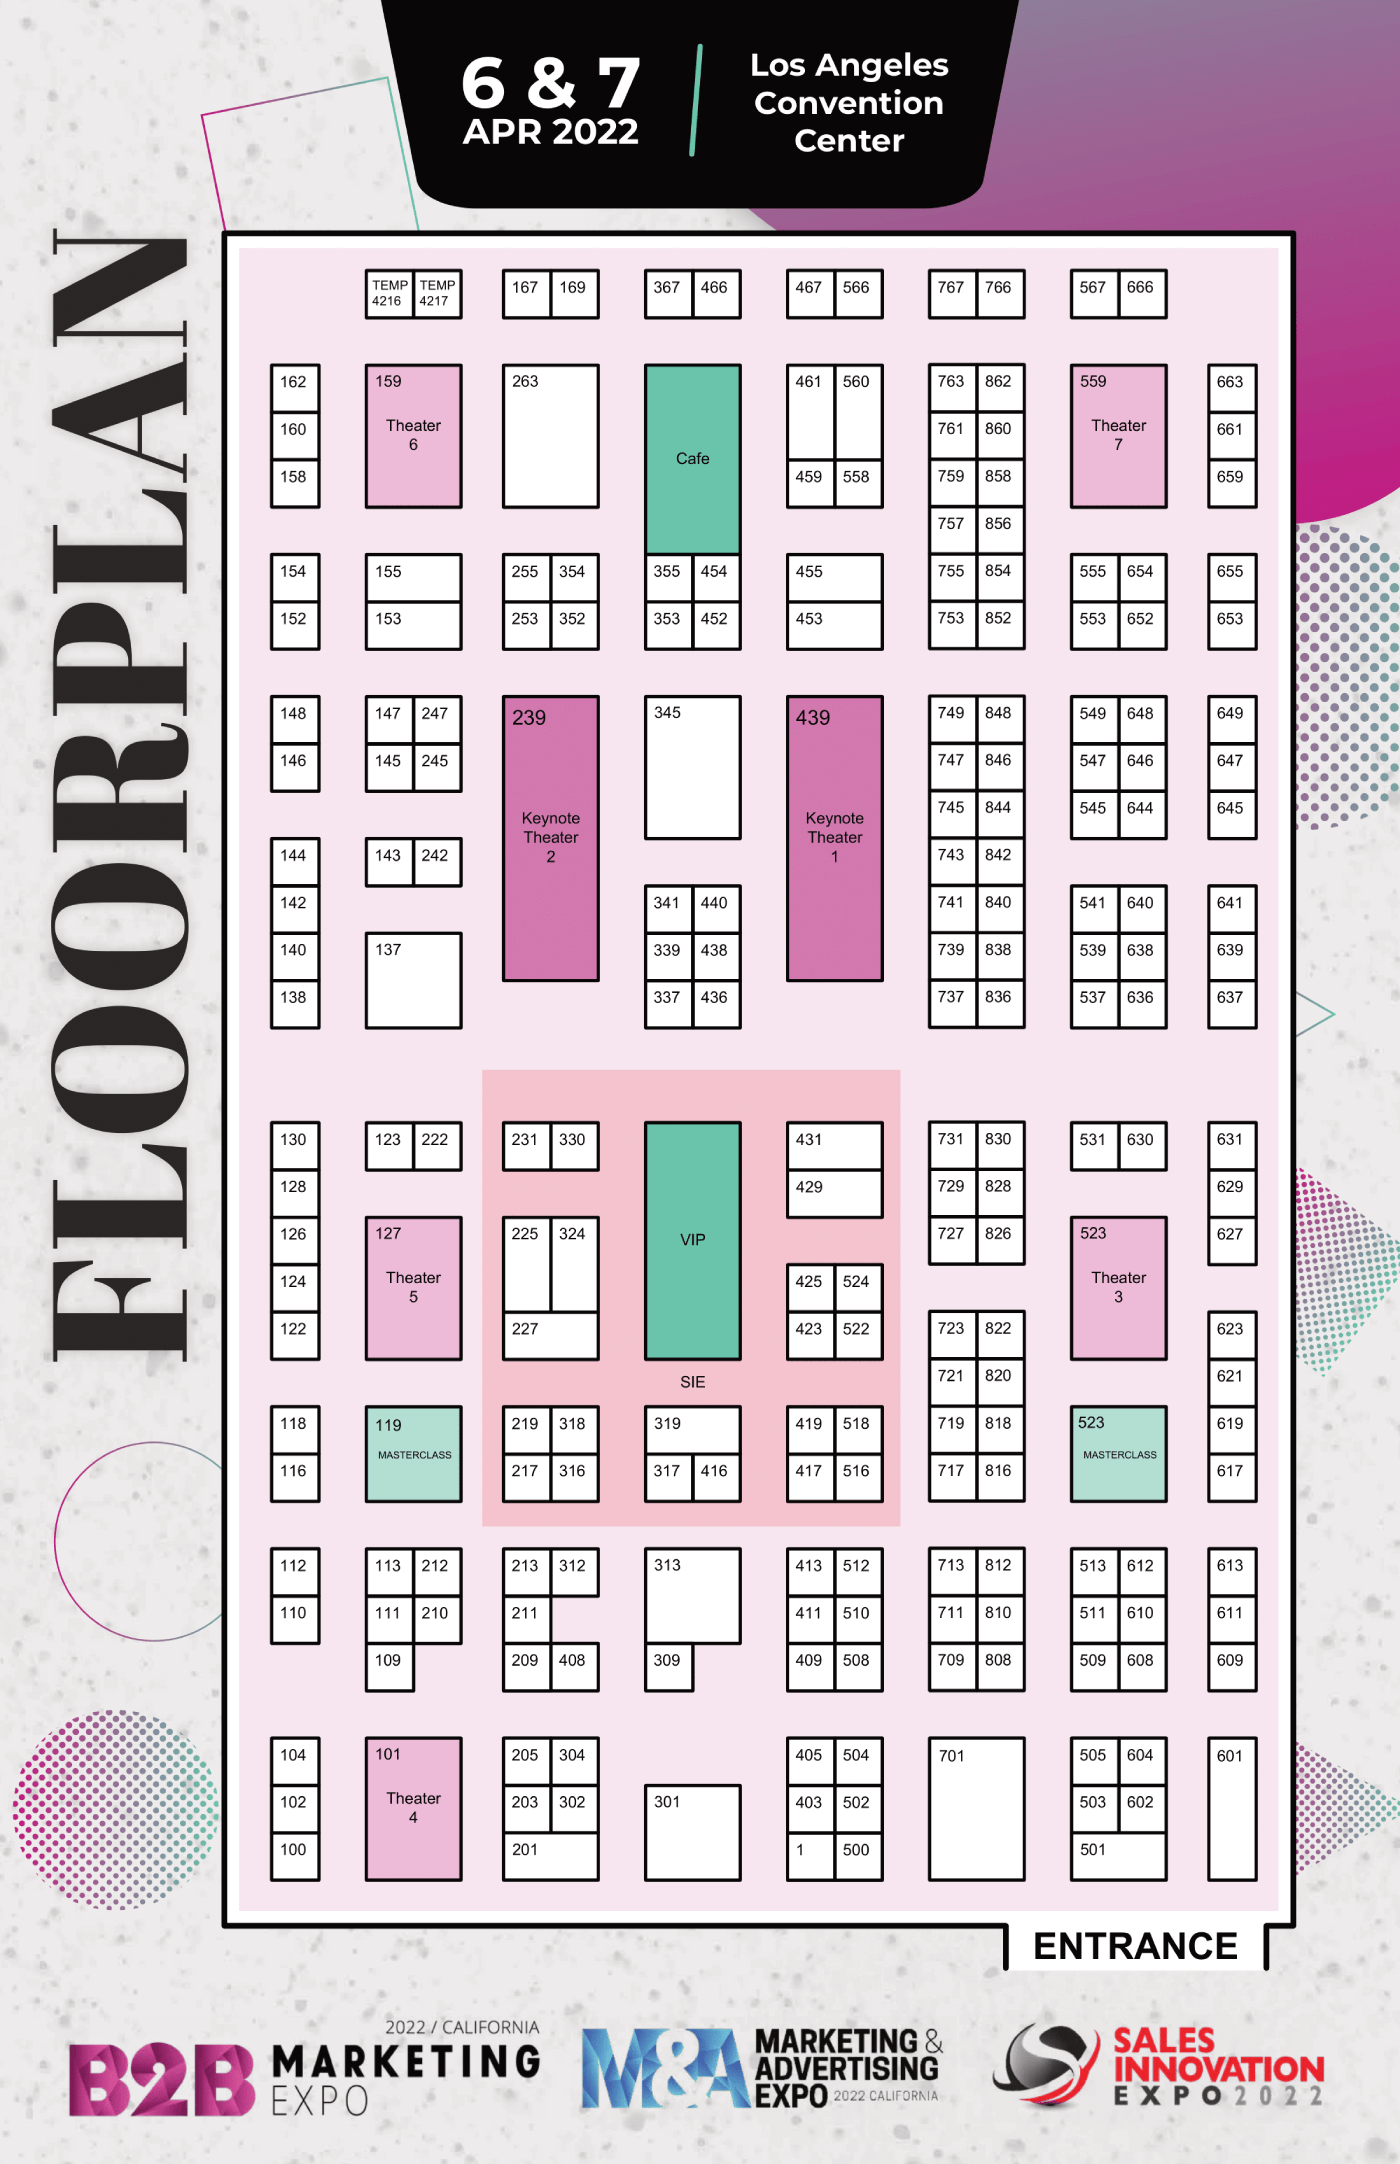 B2B Marketing Expo floorplan